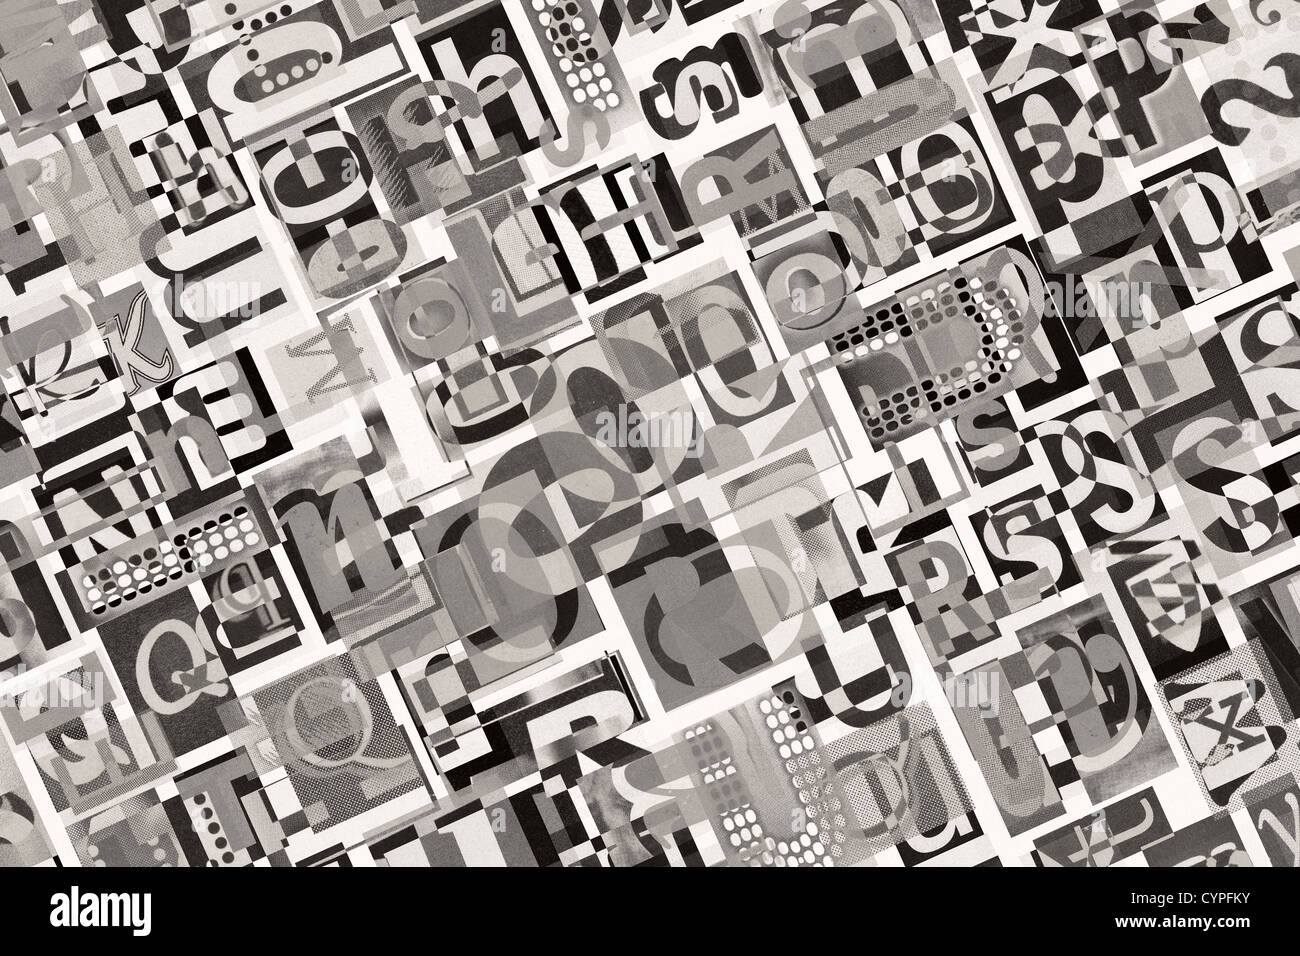 Designed background. Digital collage made of newspaper clippings.  - Stock Image